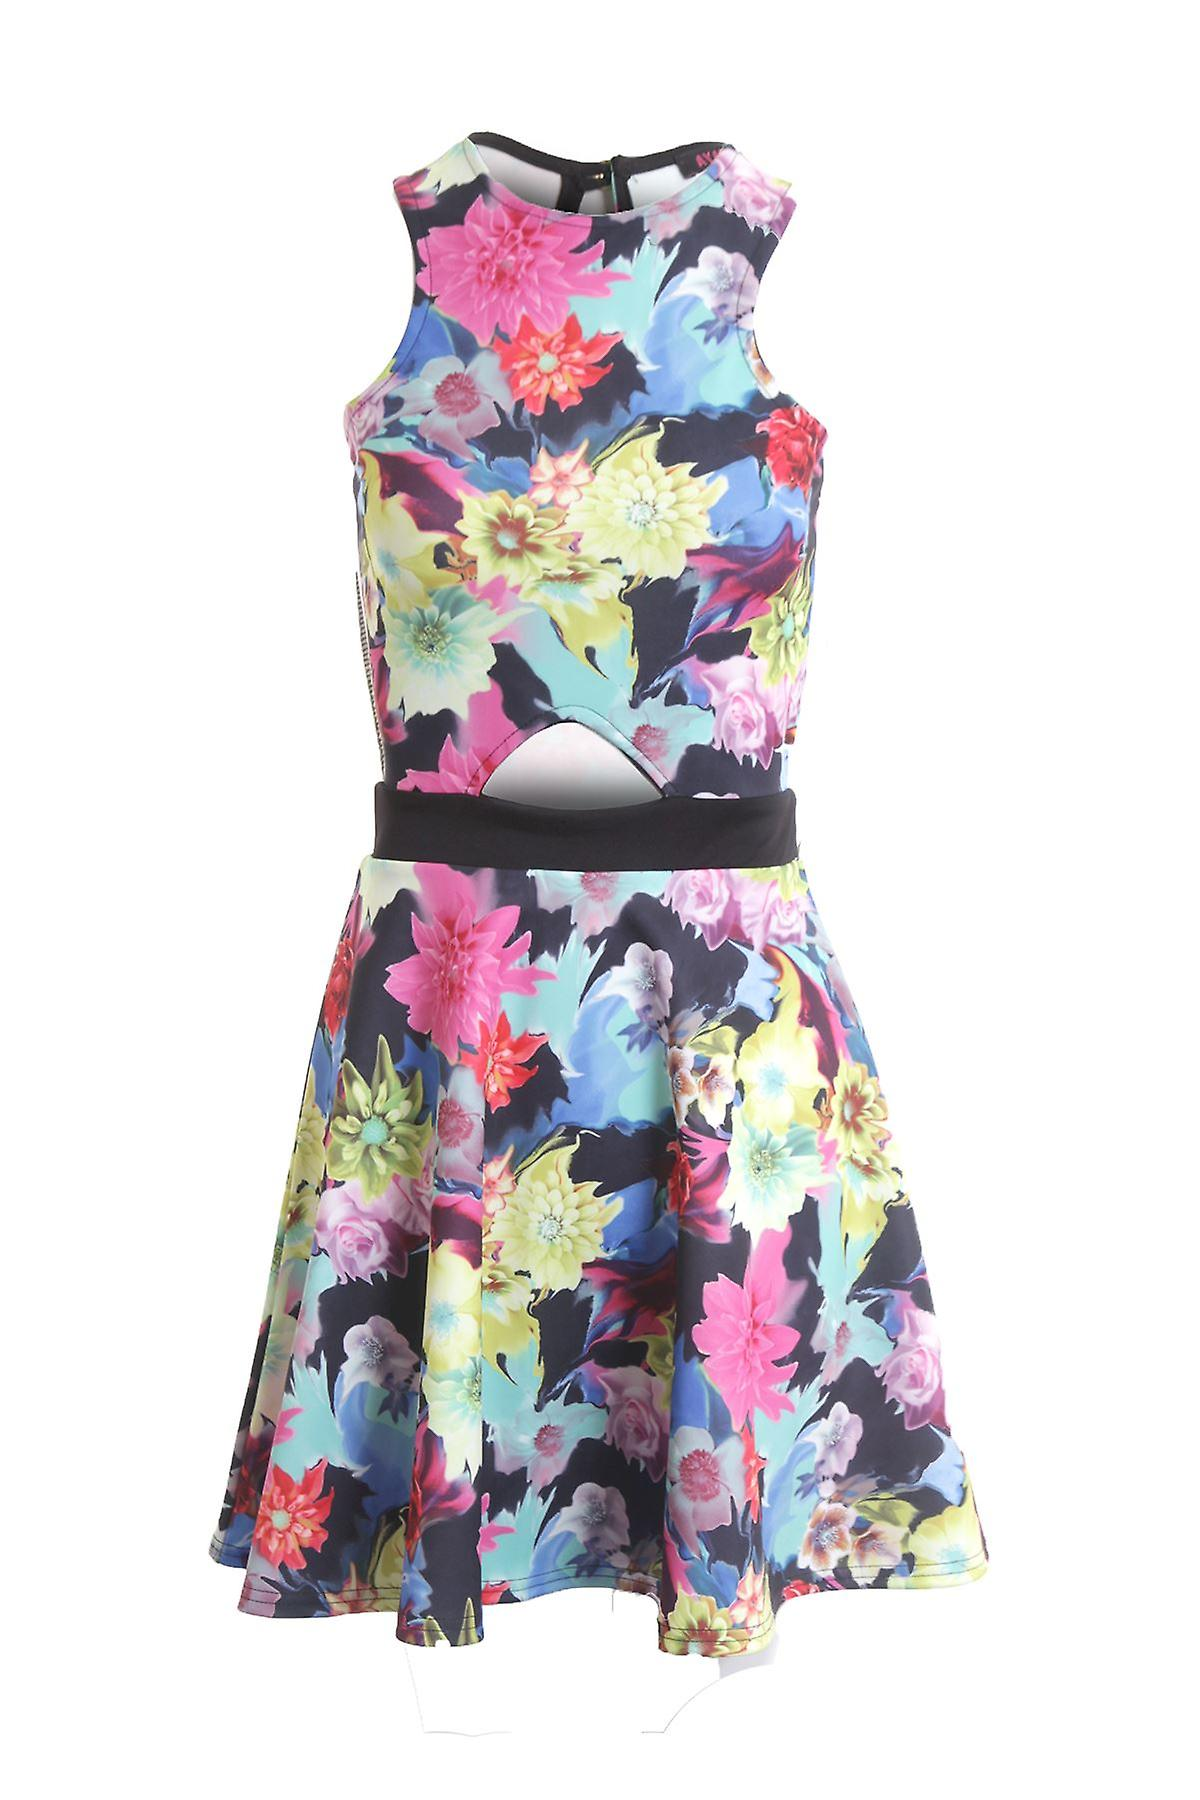 Ladies Sleeveless Front Cut Out Floral Print Women's Skater Dress